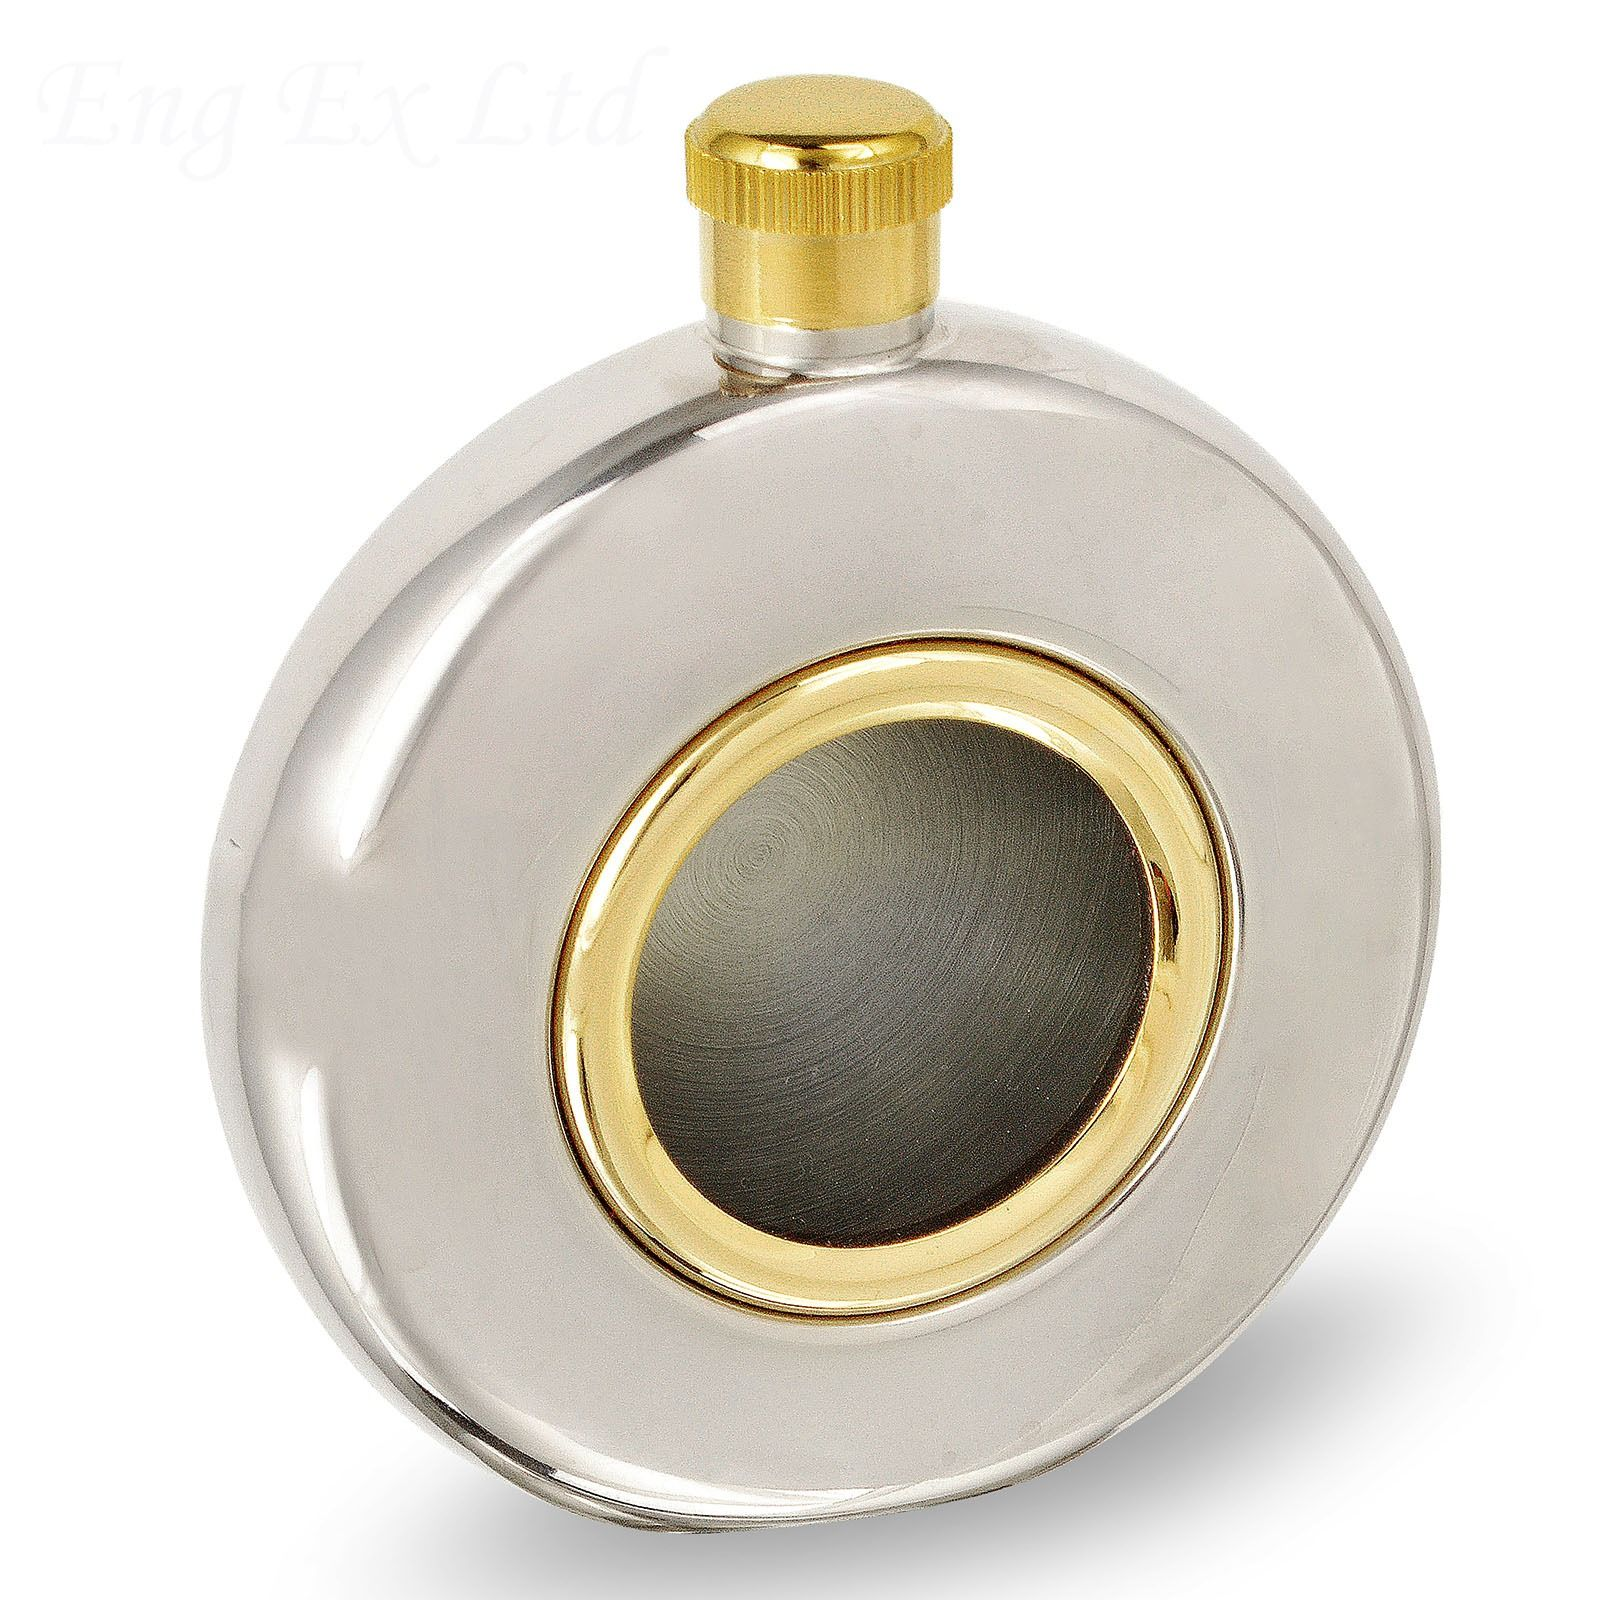 5oz Round Hip Flask with window - Gold Trim